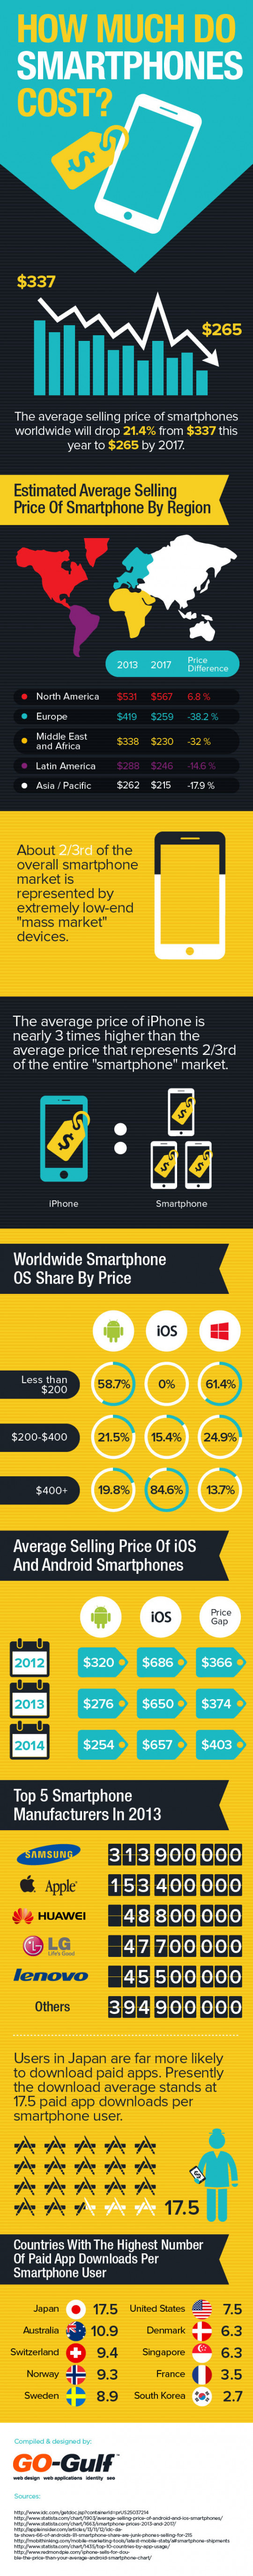 How Much Do Smartphones Cost